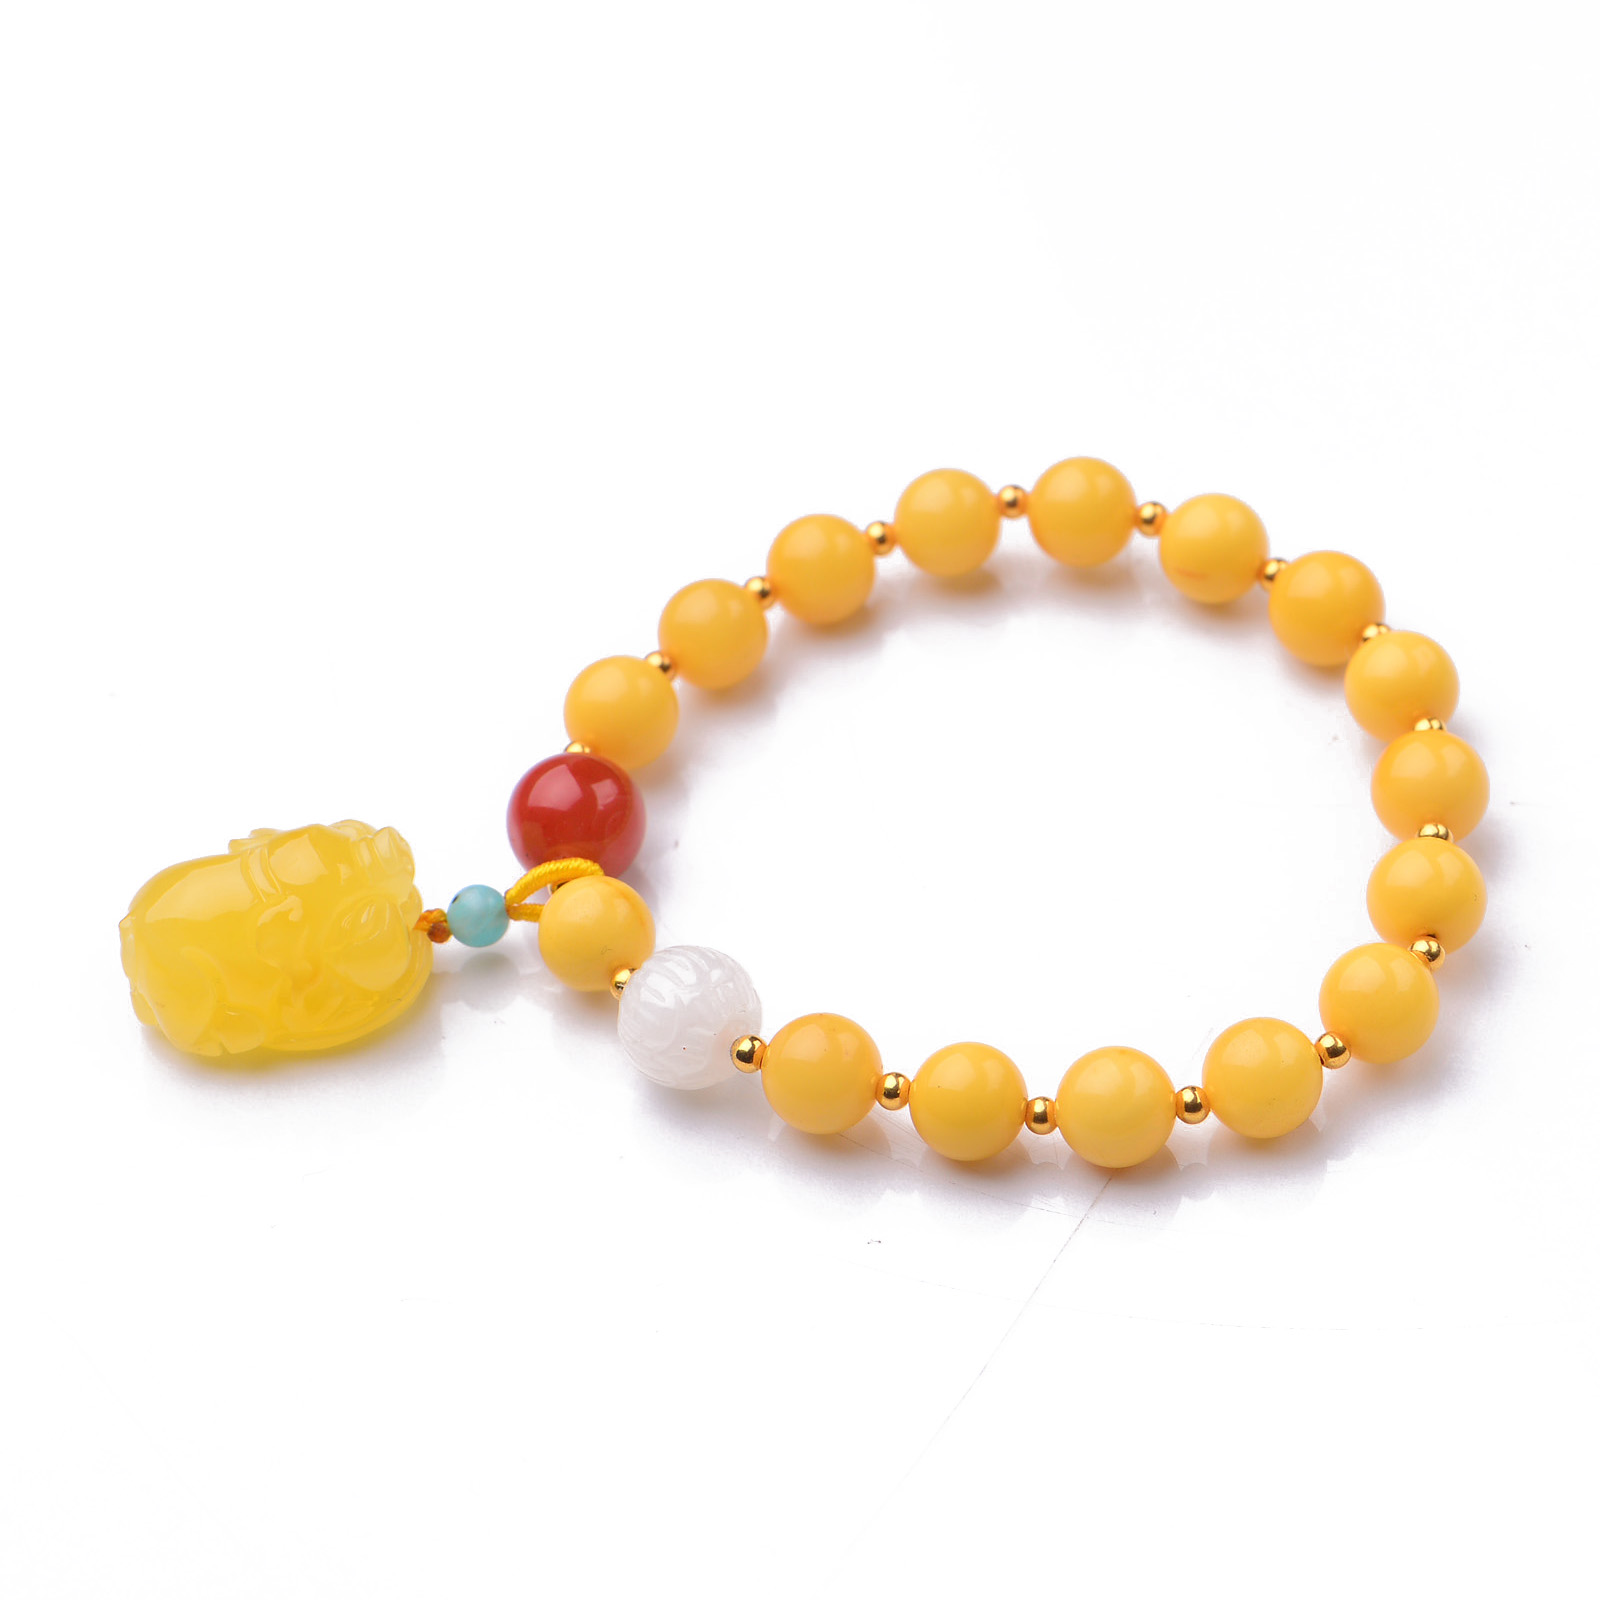 Handmade Authentic Wax Bracelets